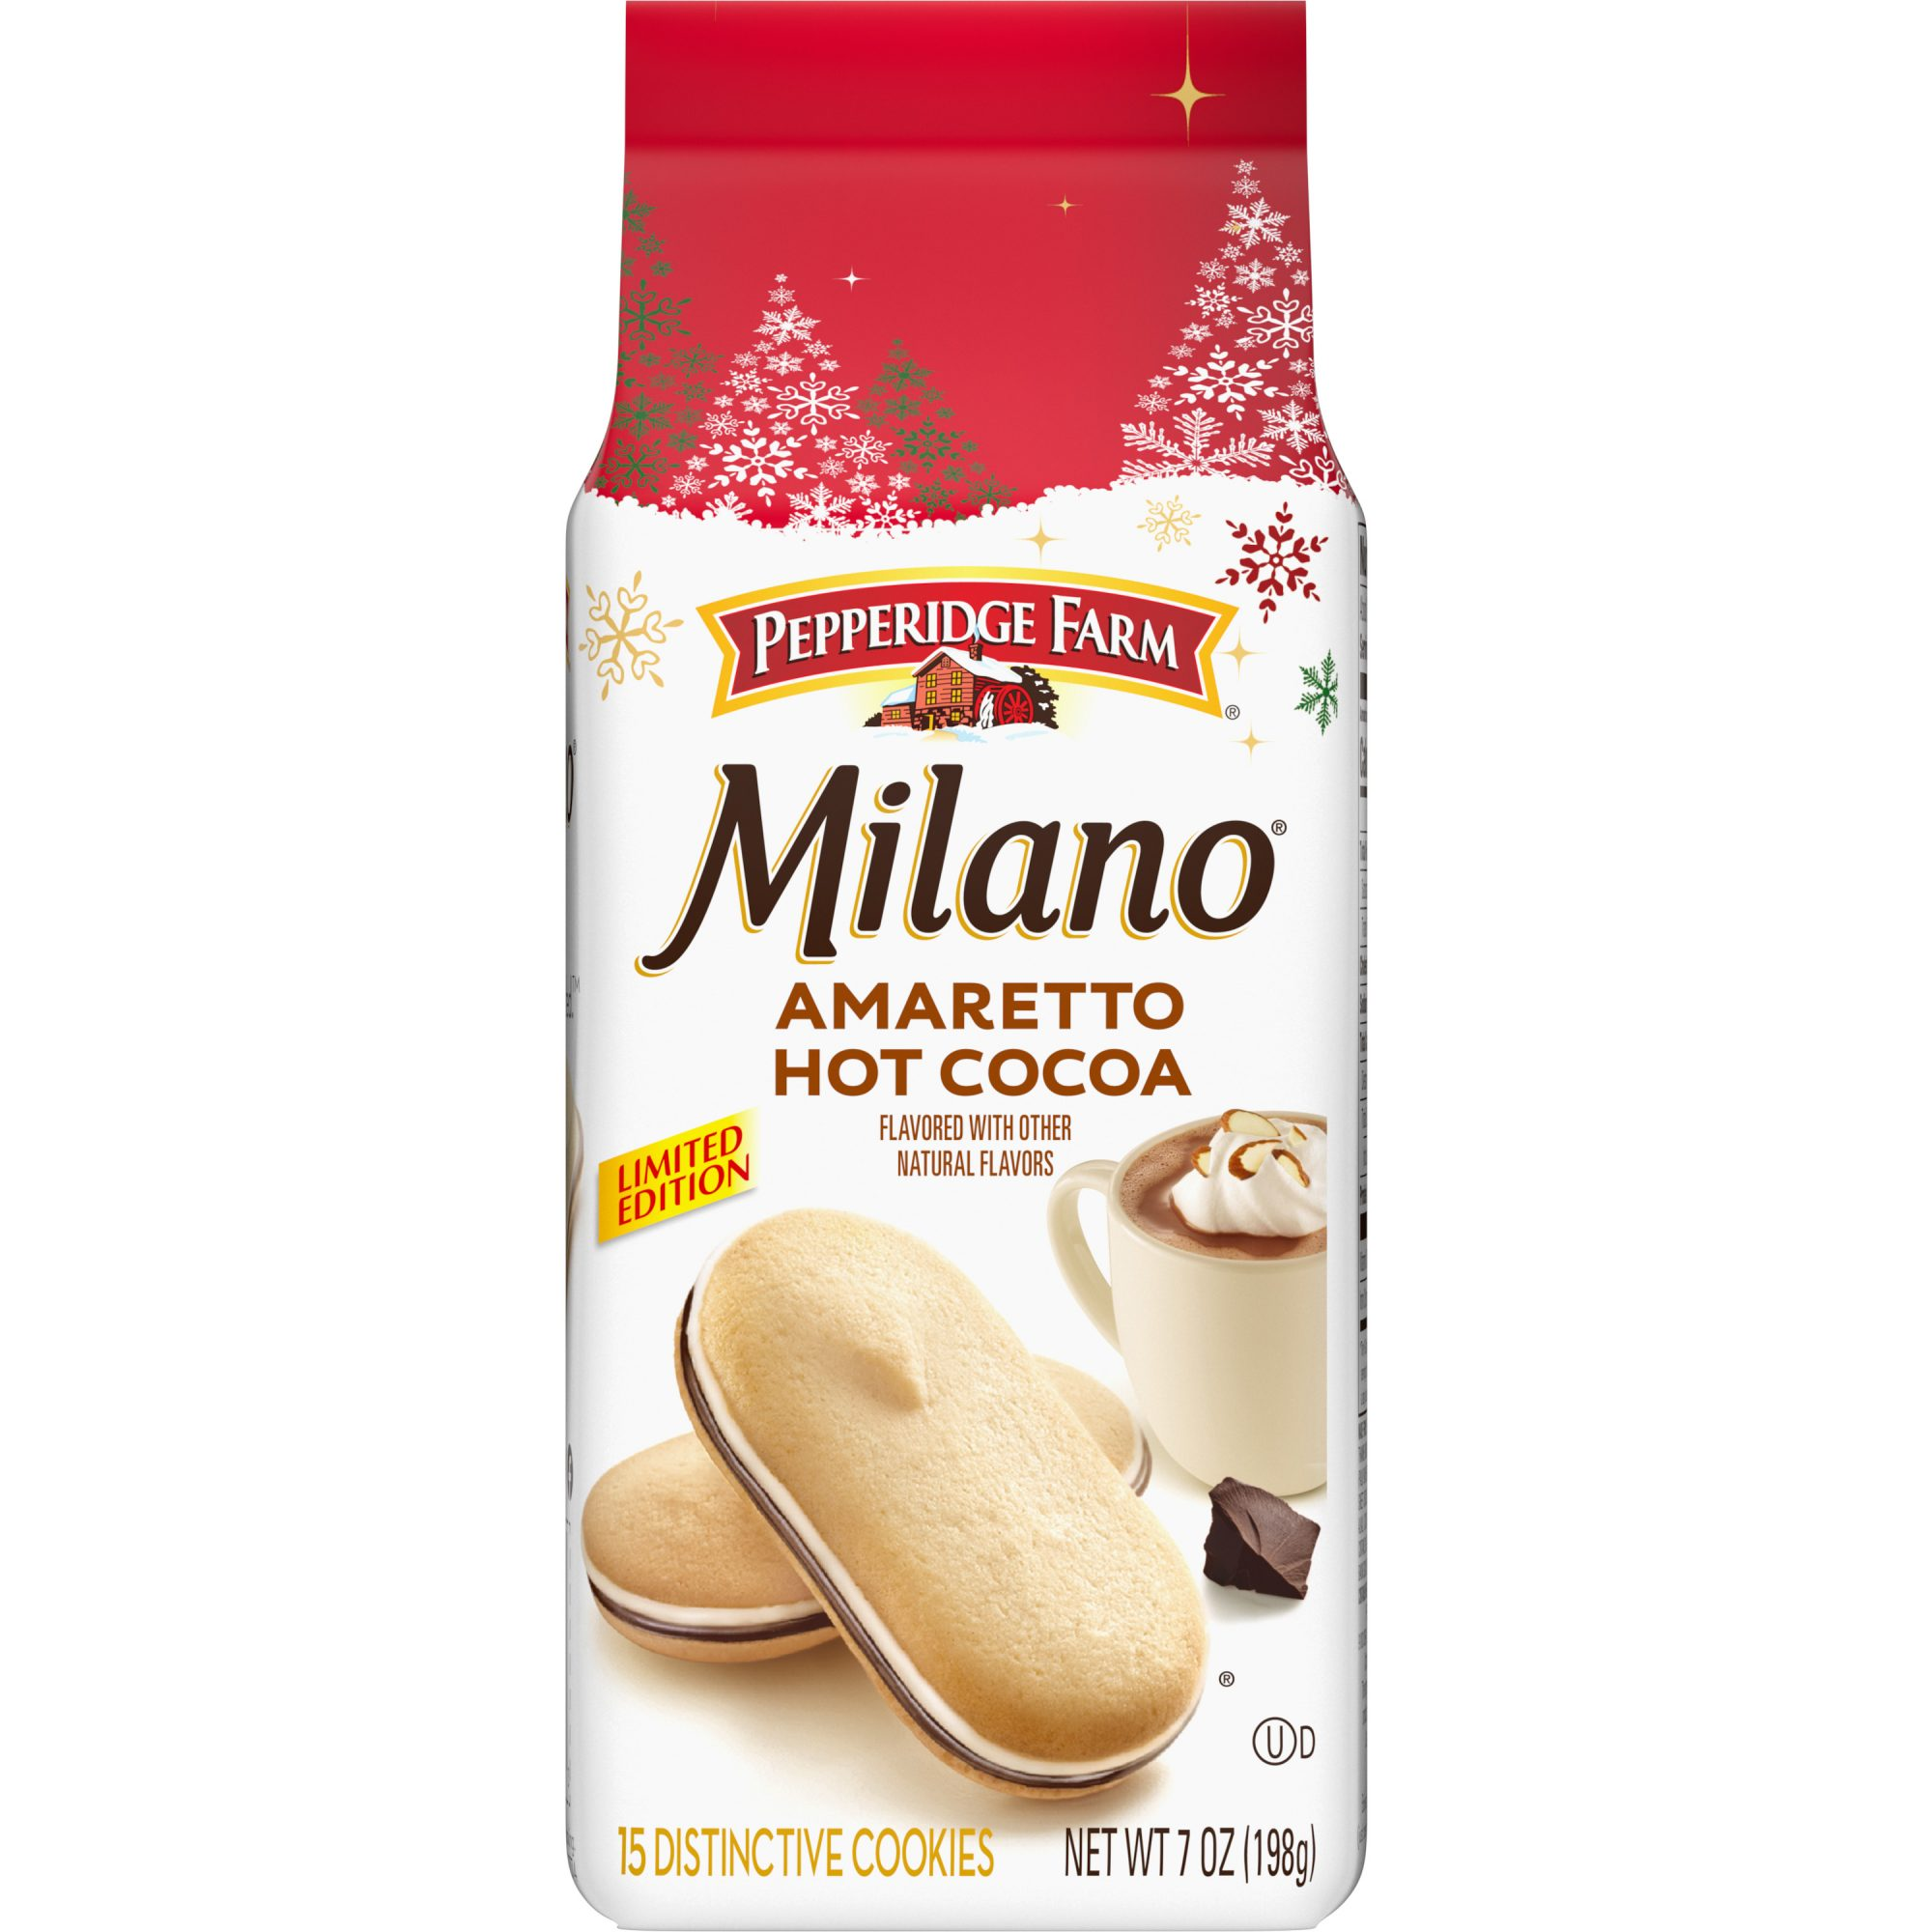 Milano Amaretto Hot Cocoa Flavored